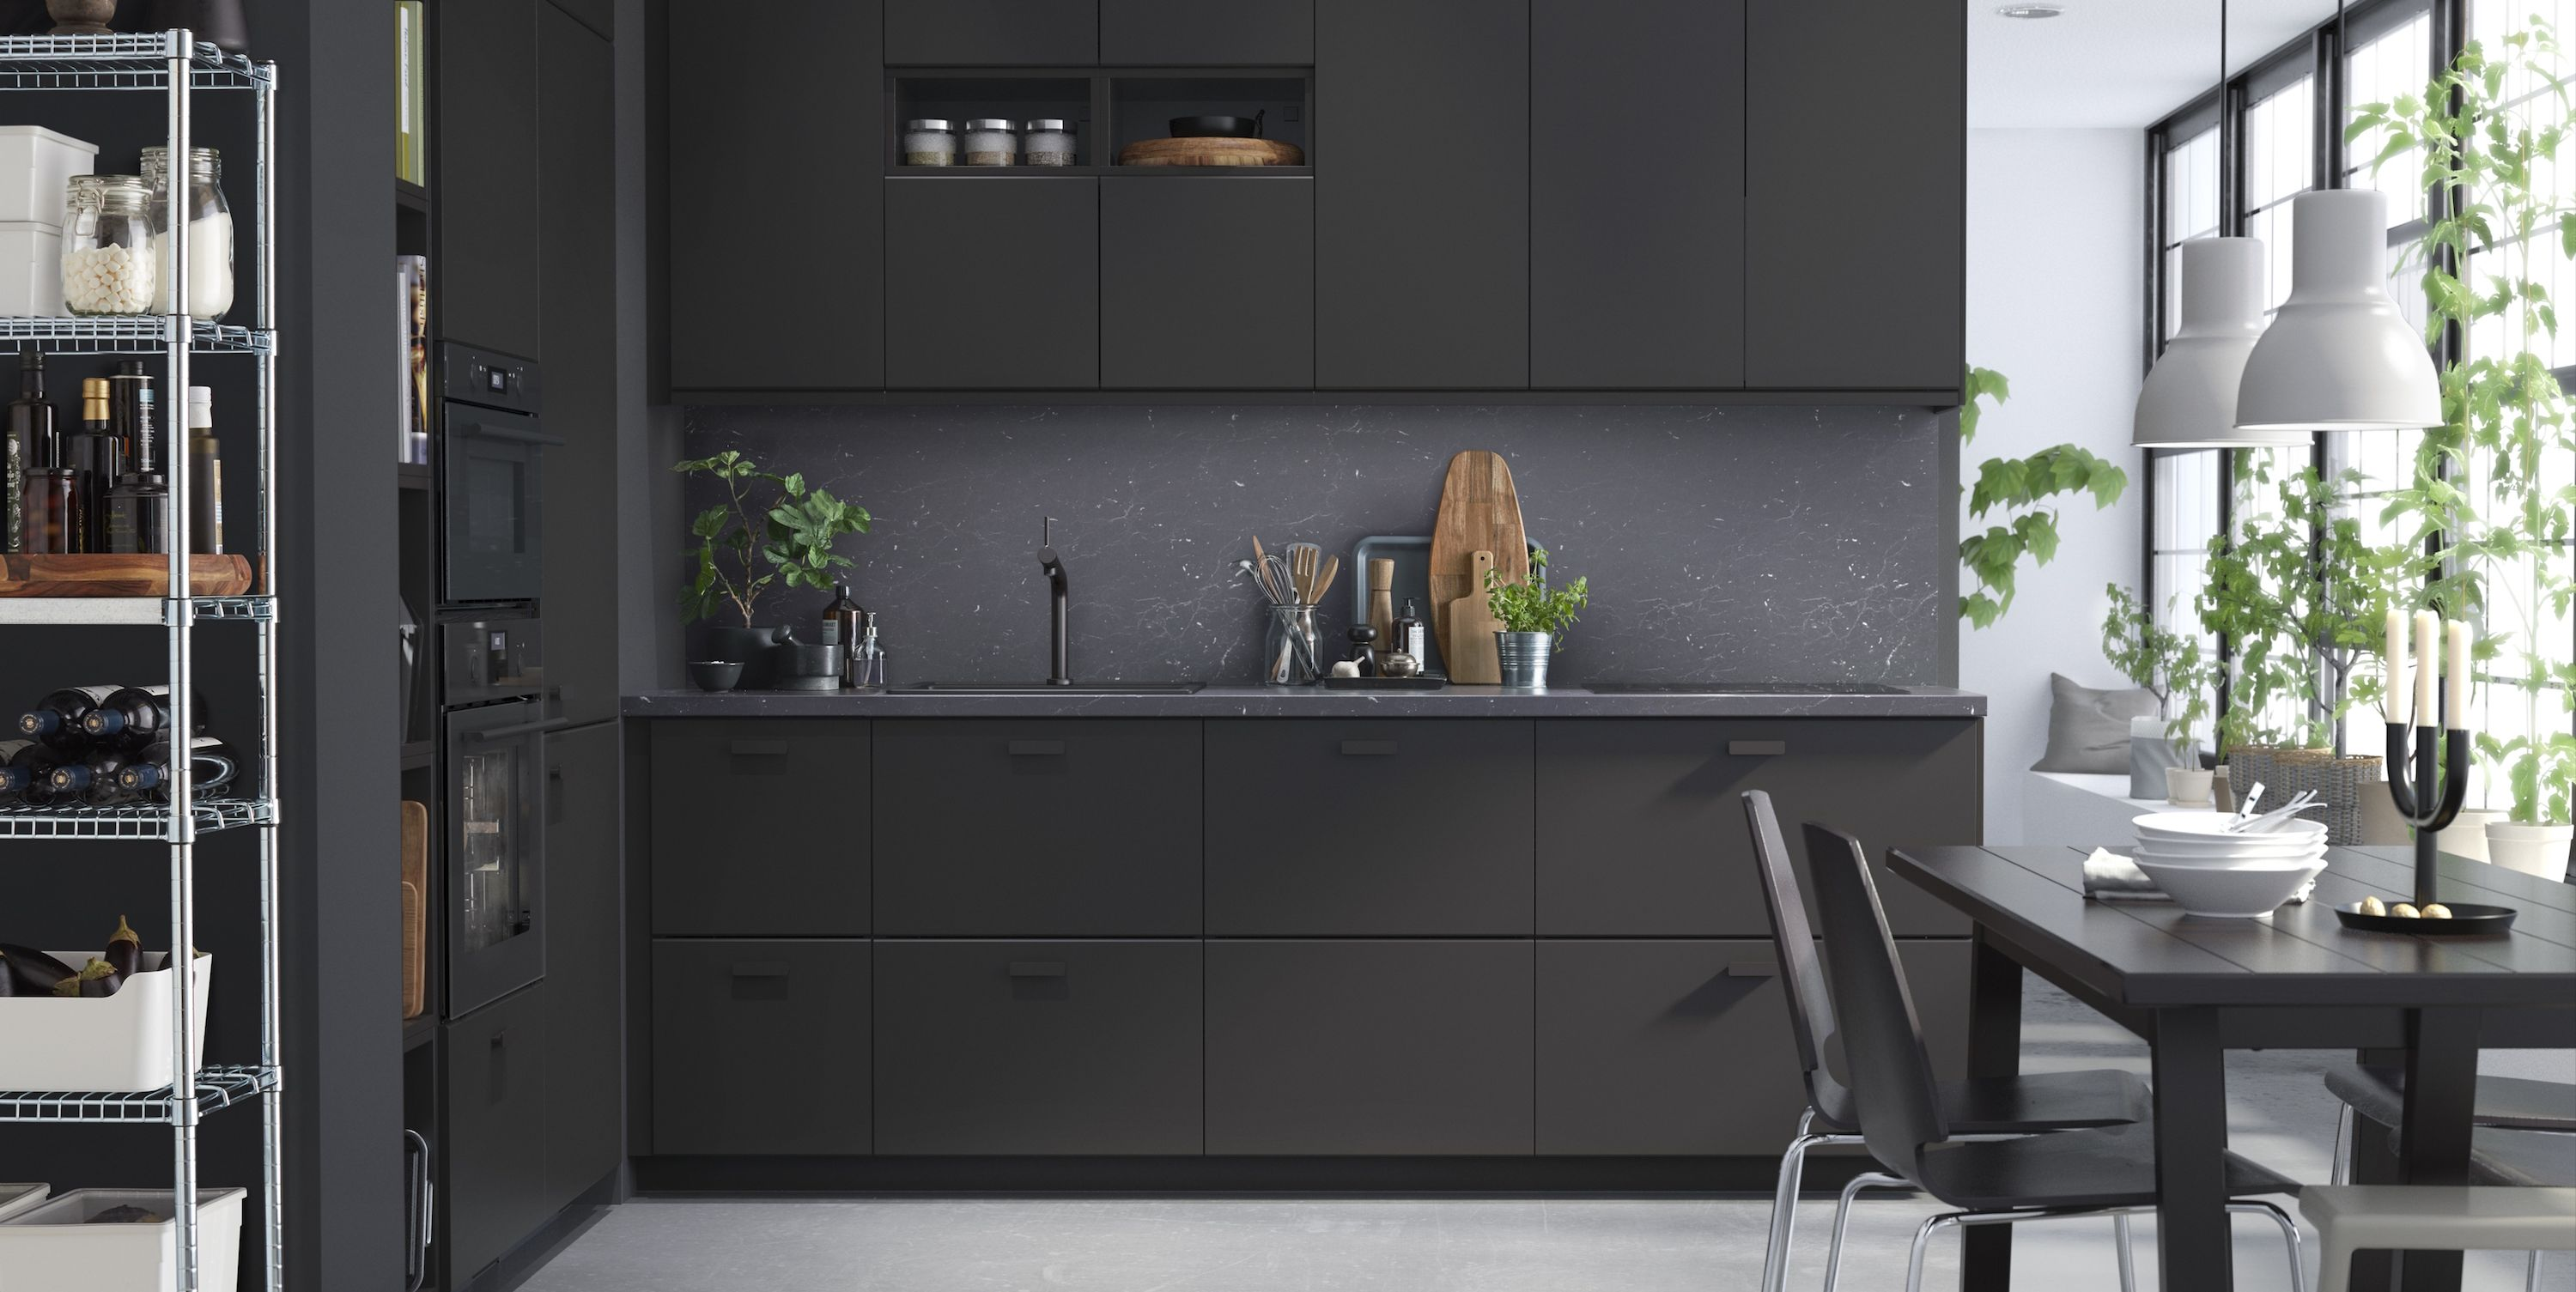 ikea dark kitchen cabinets ikea kitchen cabinets made from recycled materials black 17577